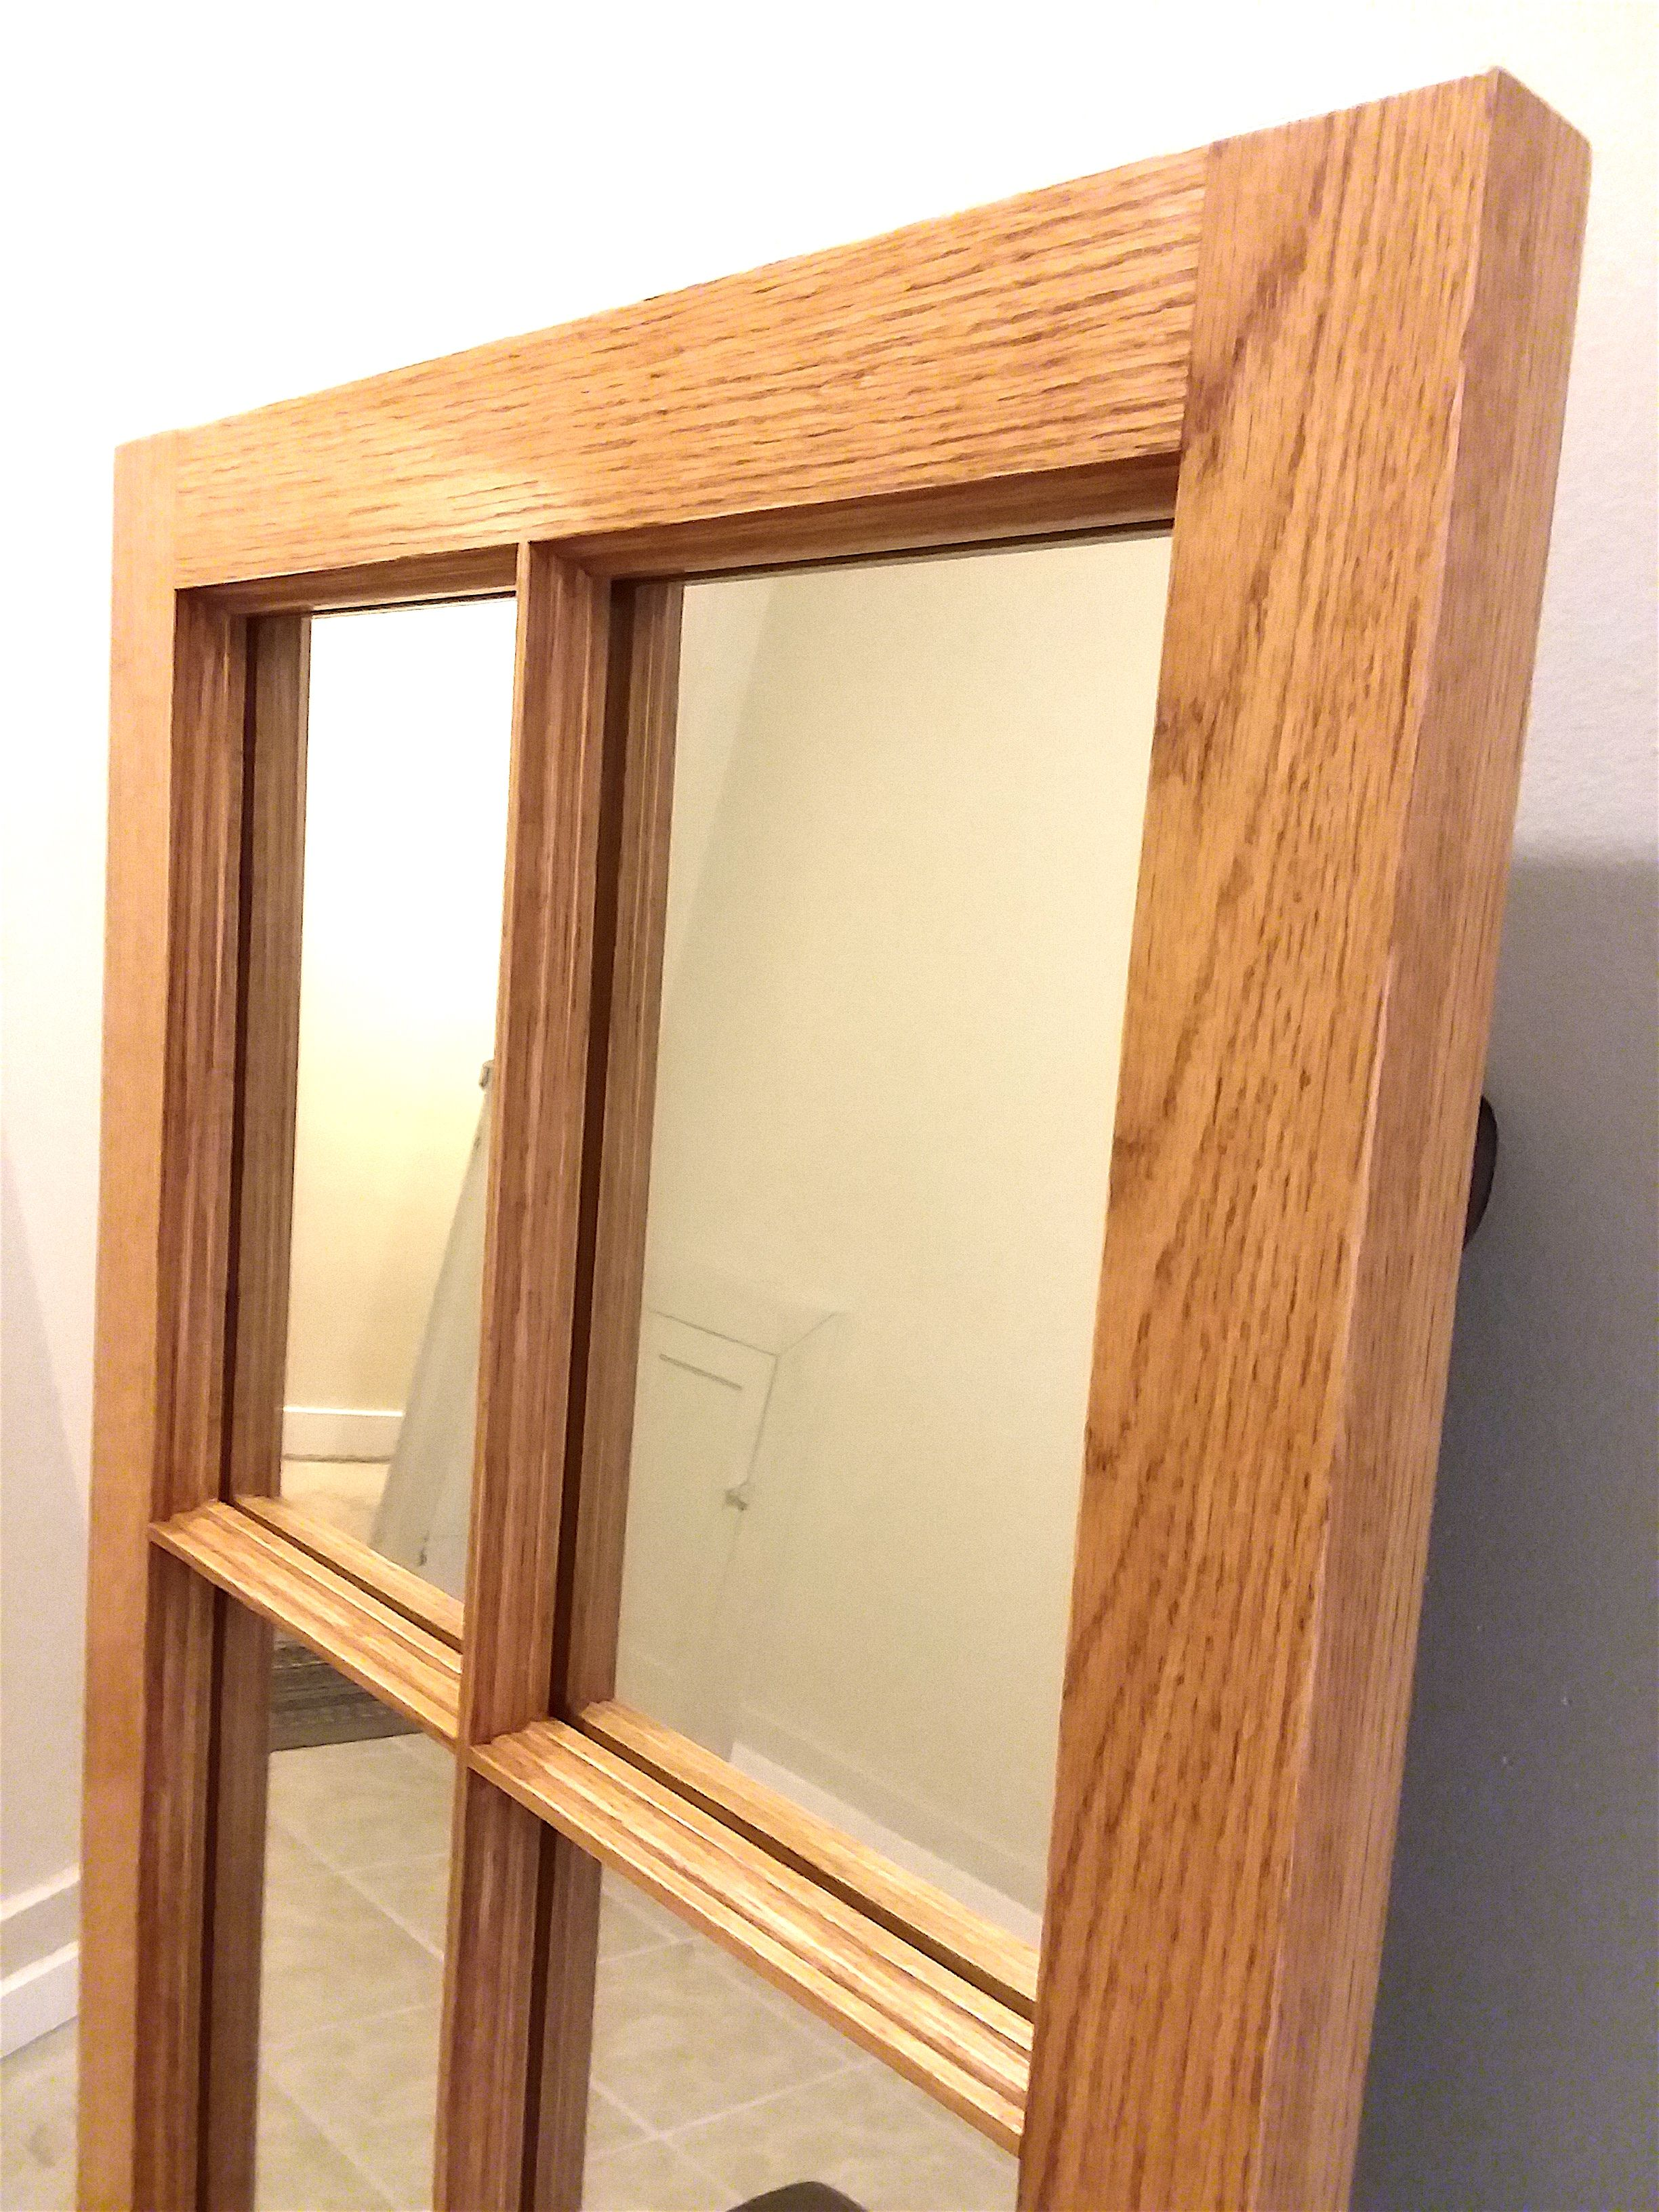 Decorative Solid Oak 4 Pane Window Frame Mirror For Entryway Living Room Hallway Kitchen Bedroom And Off With Images Wood Window Frame Window Frame Mirror Window Frame